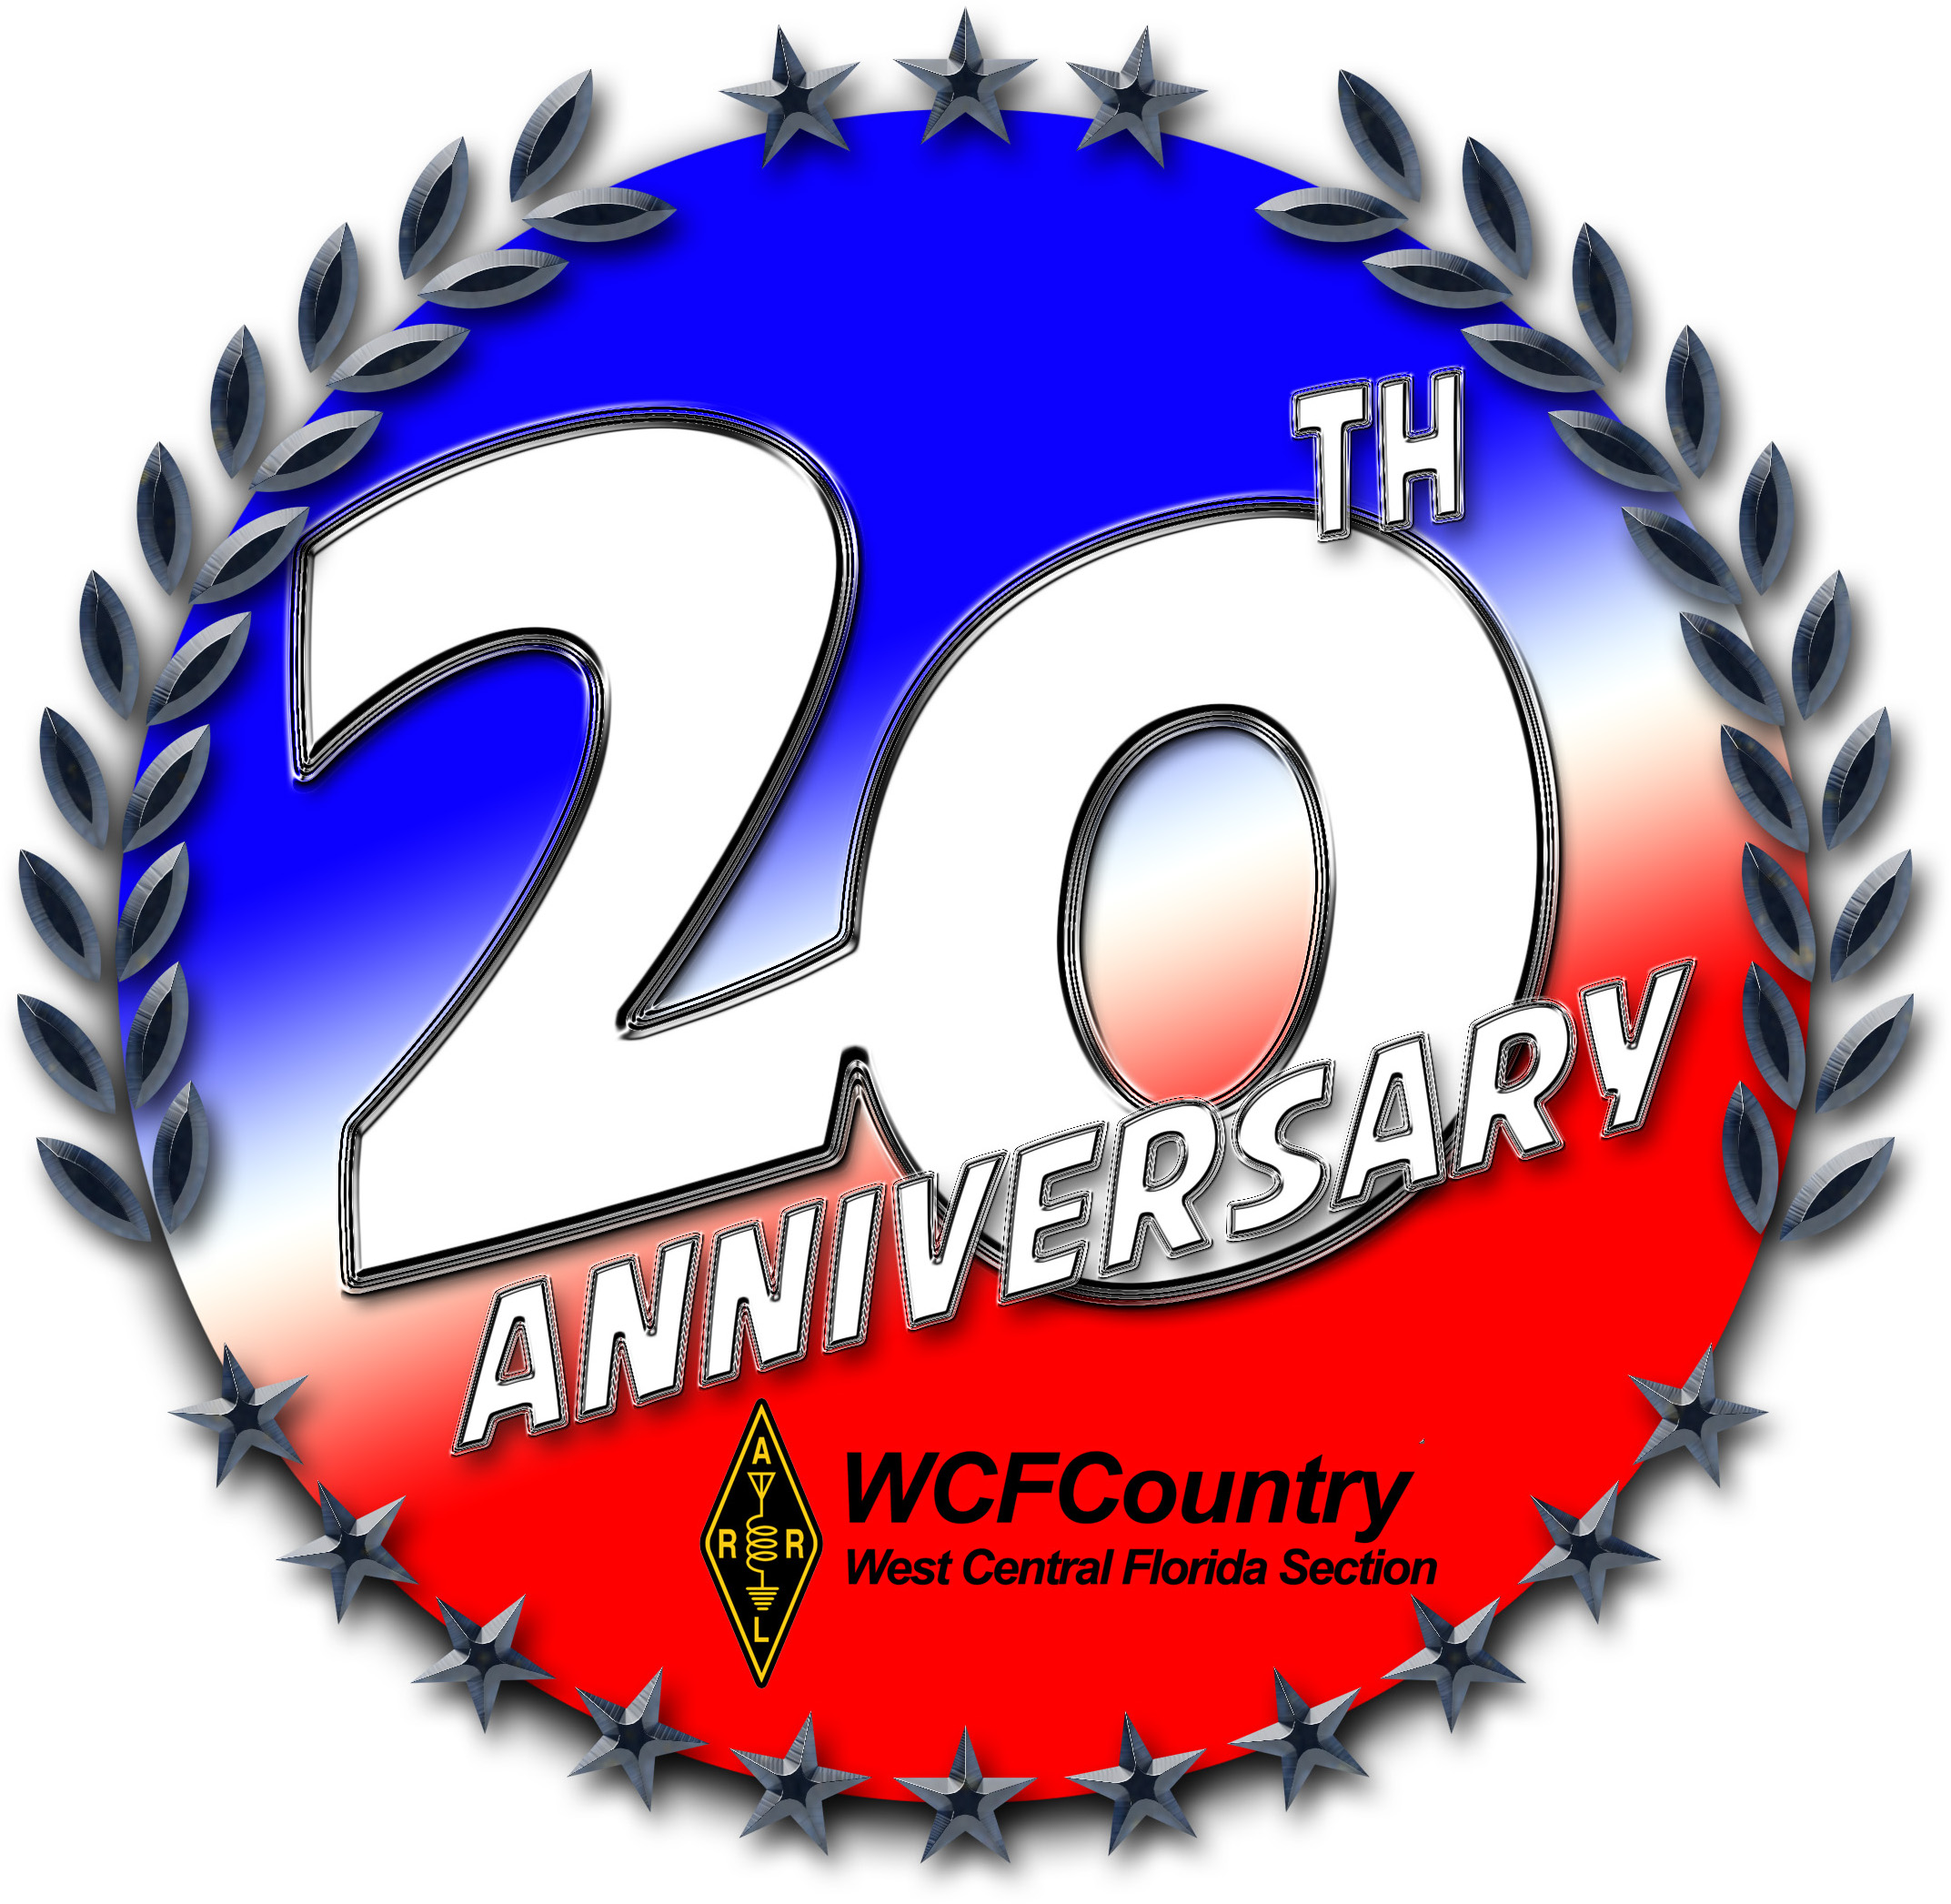 ARRL West Central Florida Section 20th Anniversary Logo